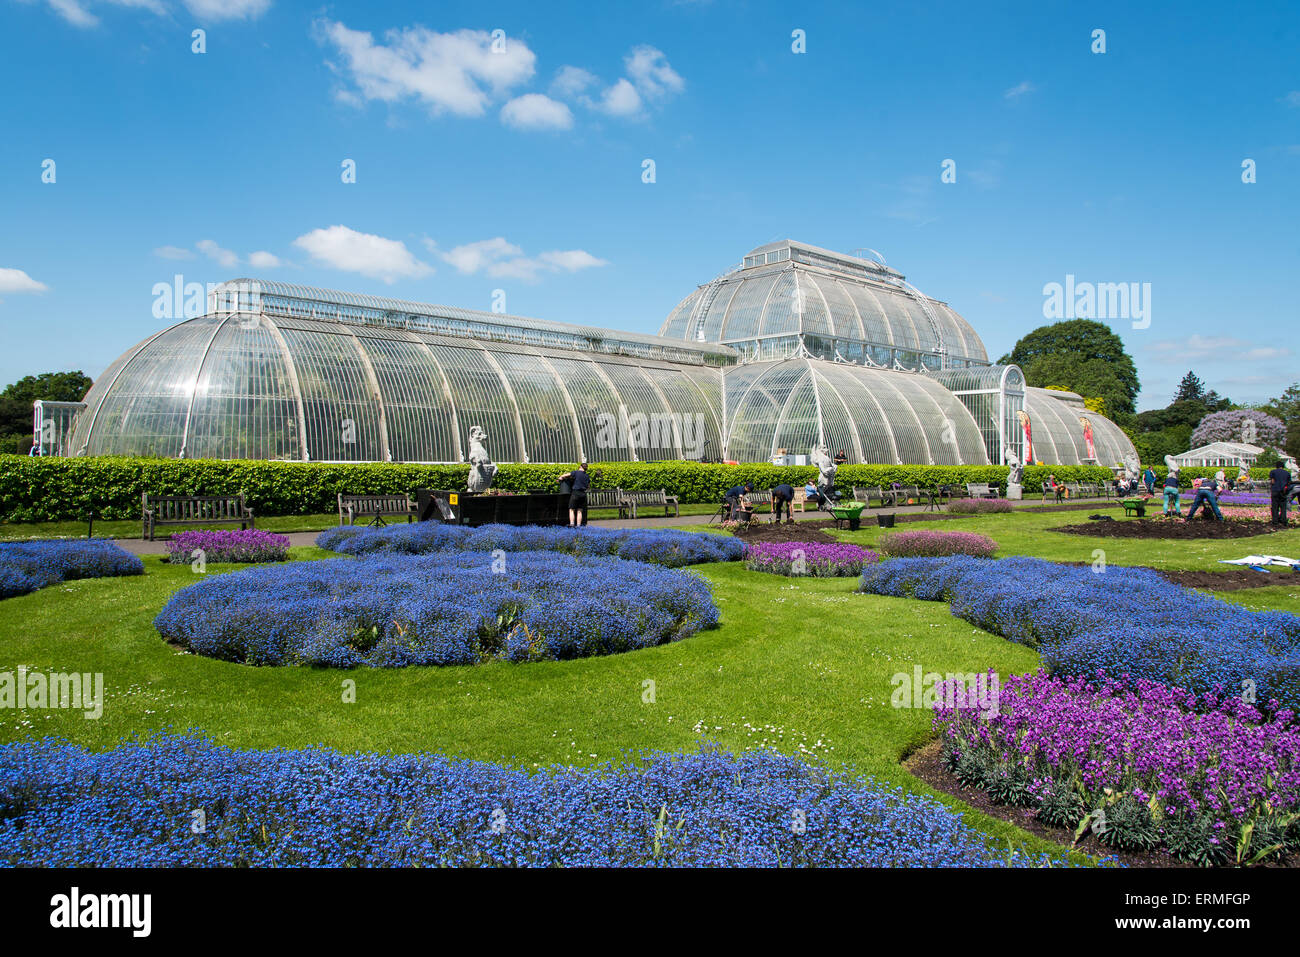 The Palm House at Kew Gardens, London - Stock Image